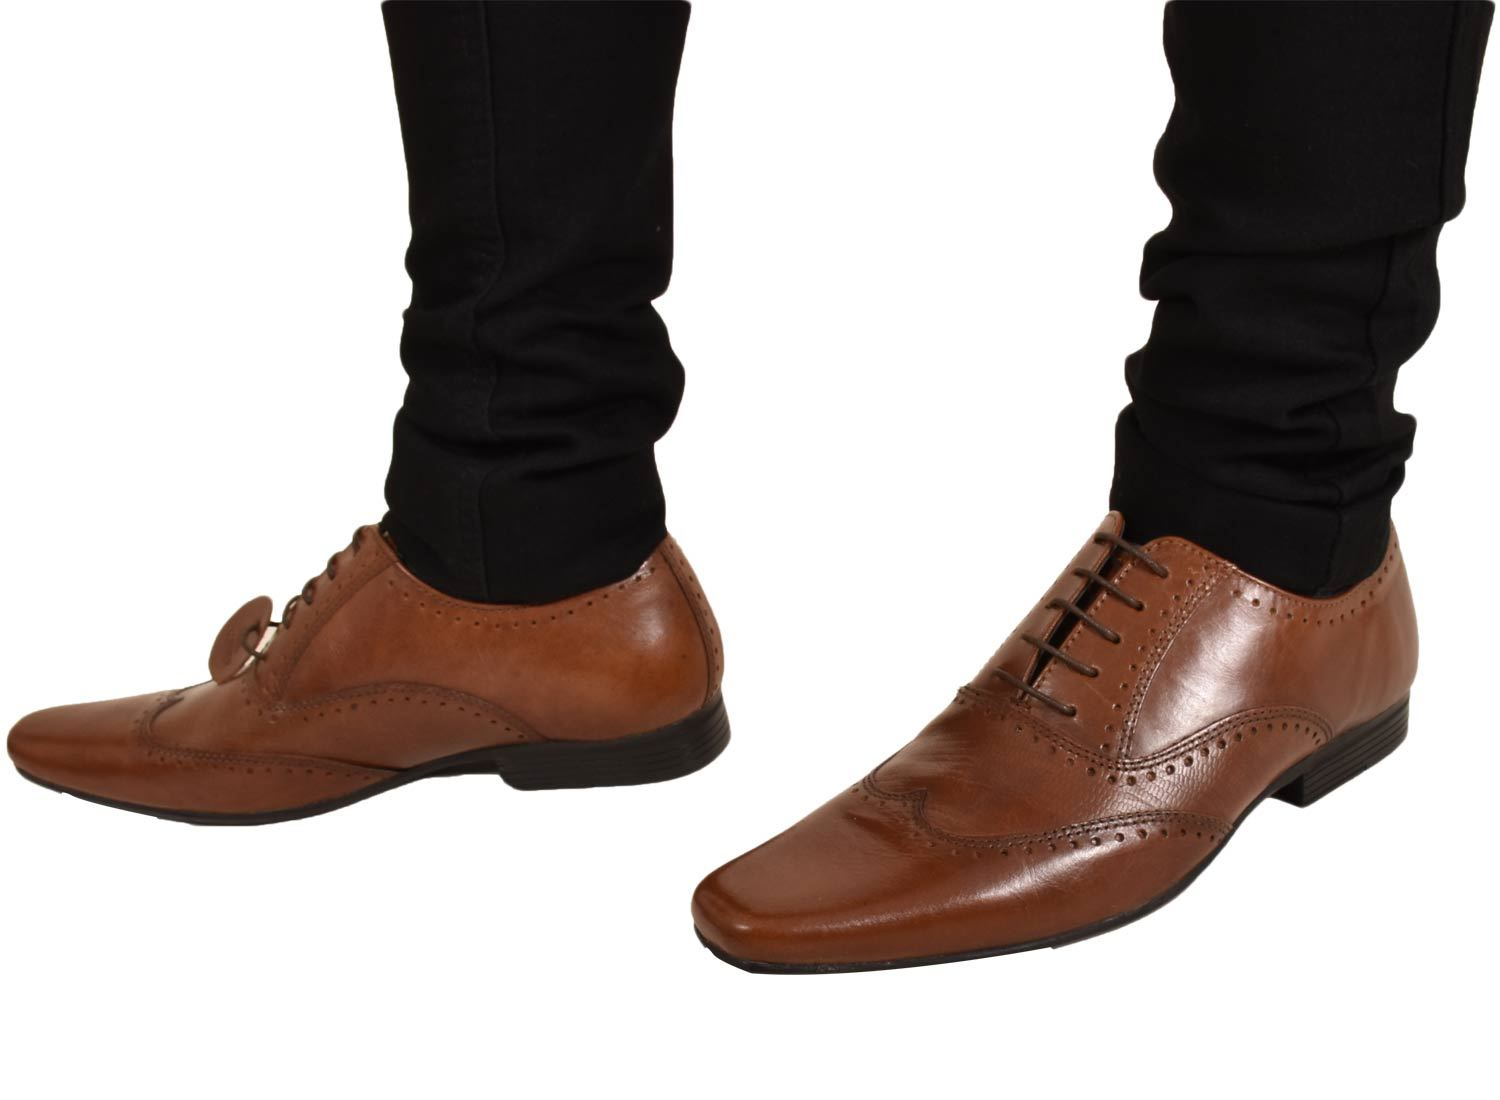 Mens-UK-Style-Leather-Lining-Formal-Office-Wedding-Smart-Work-Brogue-Shoes thumbnail 41